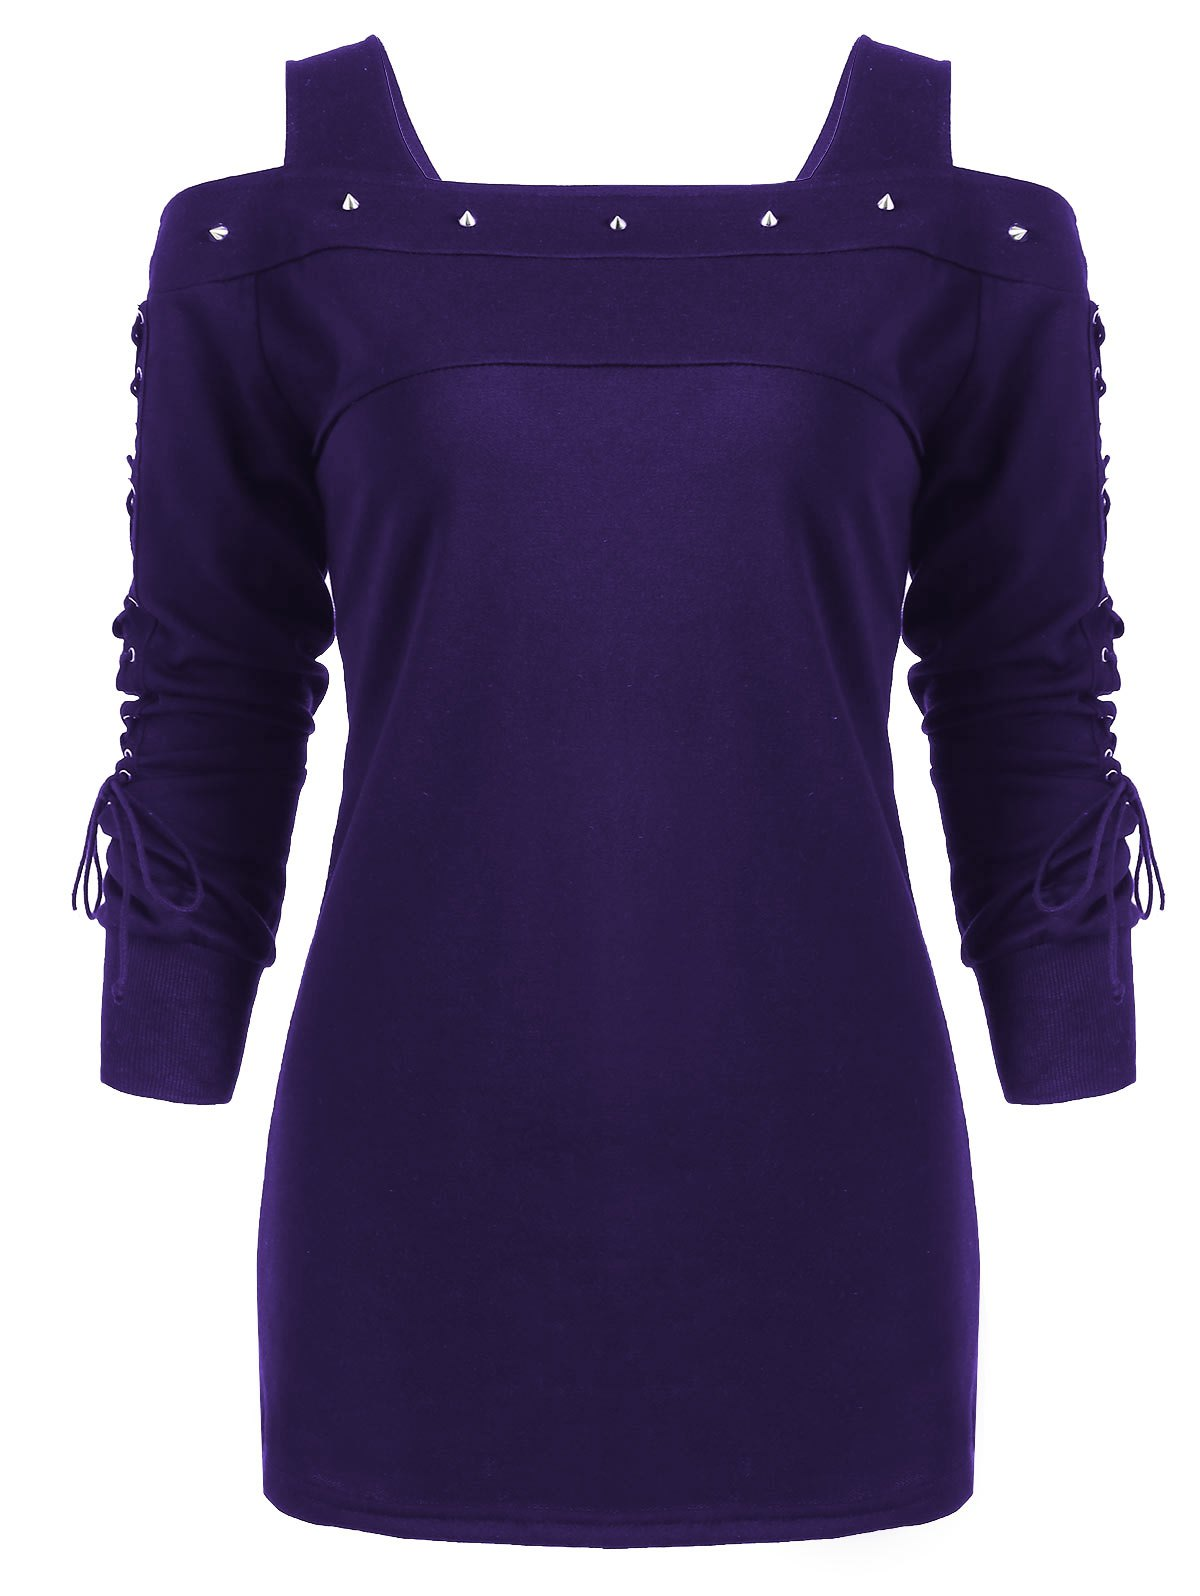 Rivet Lace-up Long Sleeve Cold Shoulder T-shirt purple lace up cold shoulder long sleeves t shirt